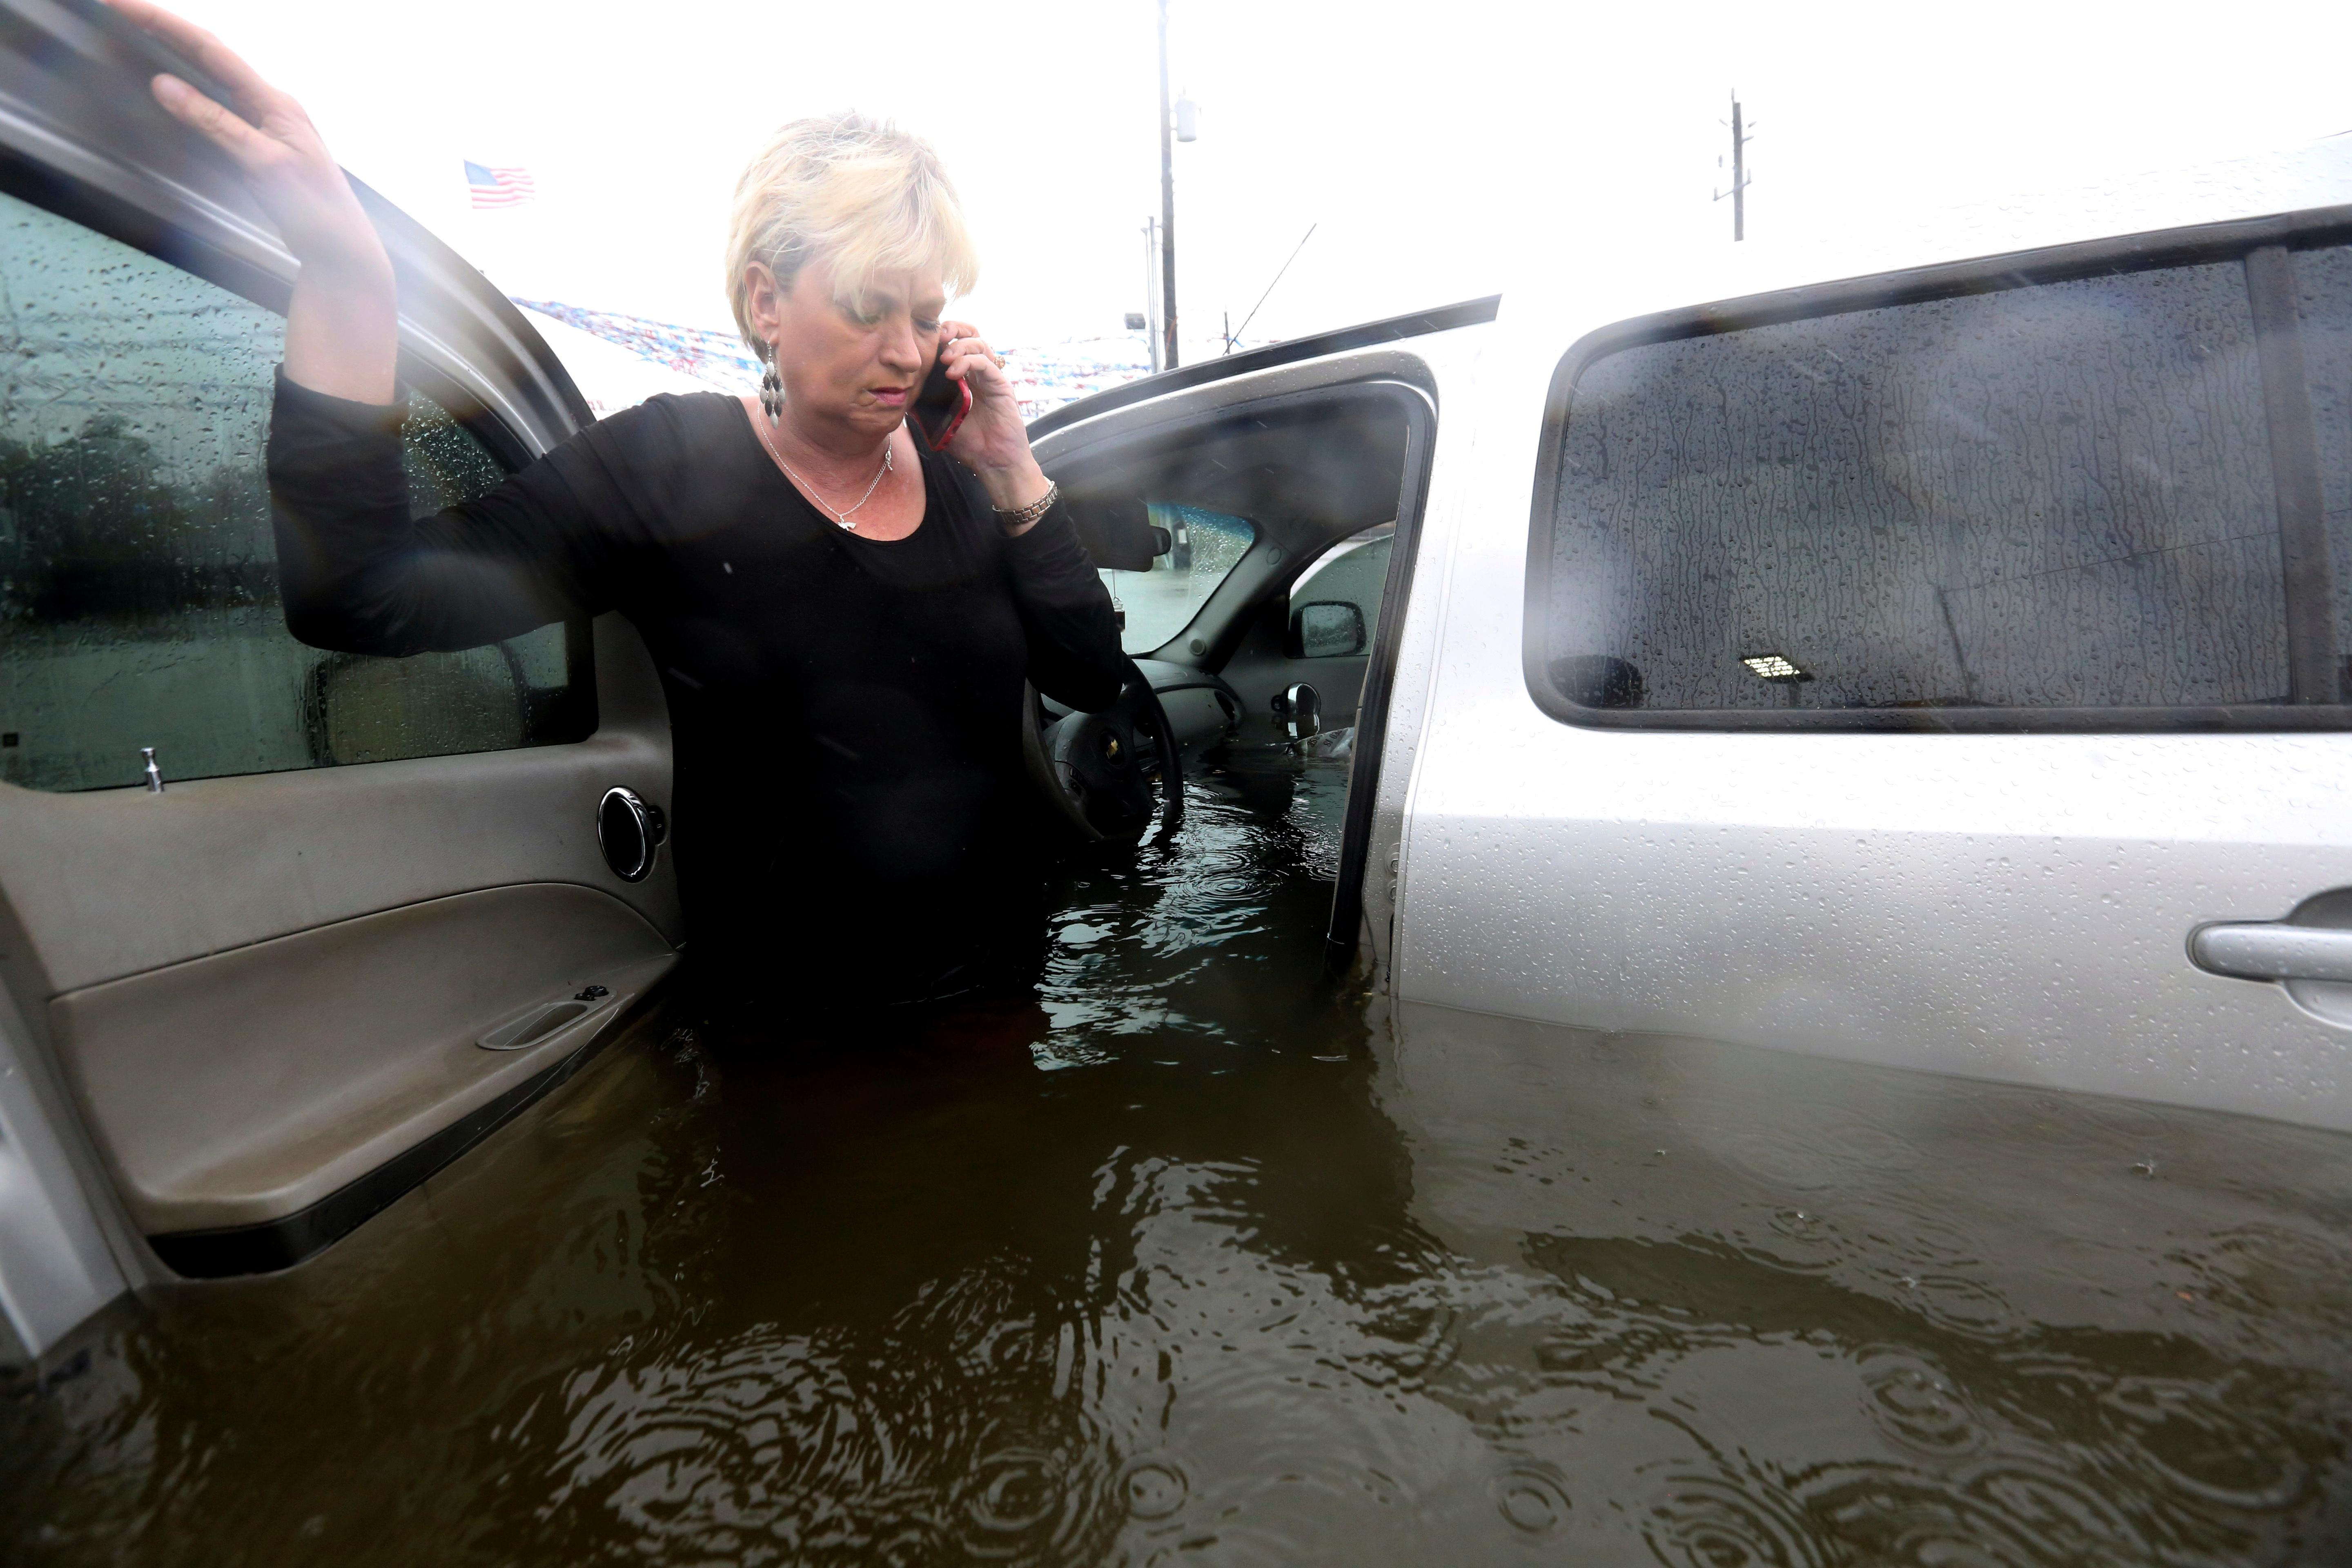 Rhonda Worthington talks on her cell phone with a 911 dispatcher after her car became stuck in rising floodwaters from Tropical Storm Harvey in Houston, Texas, Monday, Aug. 28, 2017. Worthington said she thought the water was low enough to drive through before the vehicle started to float away. (AP Photo/LM Otero)